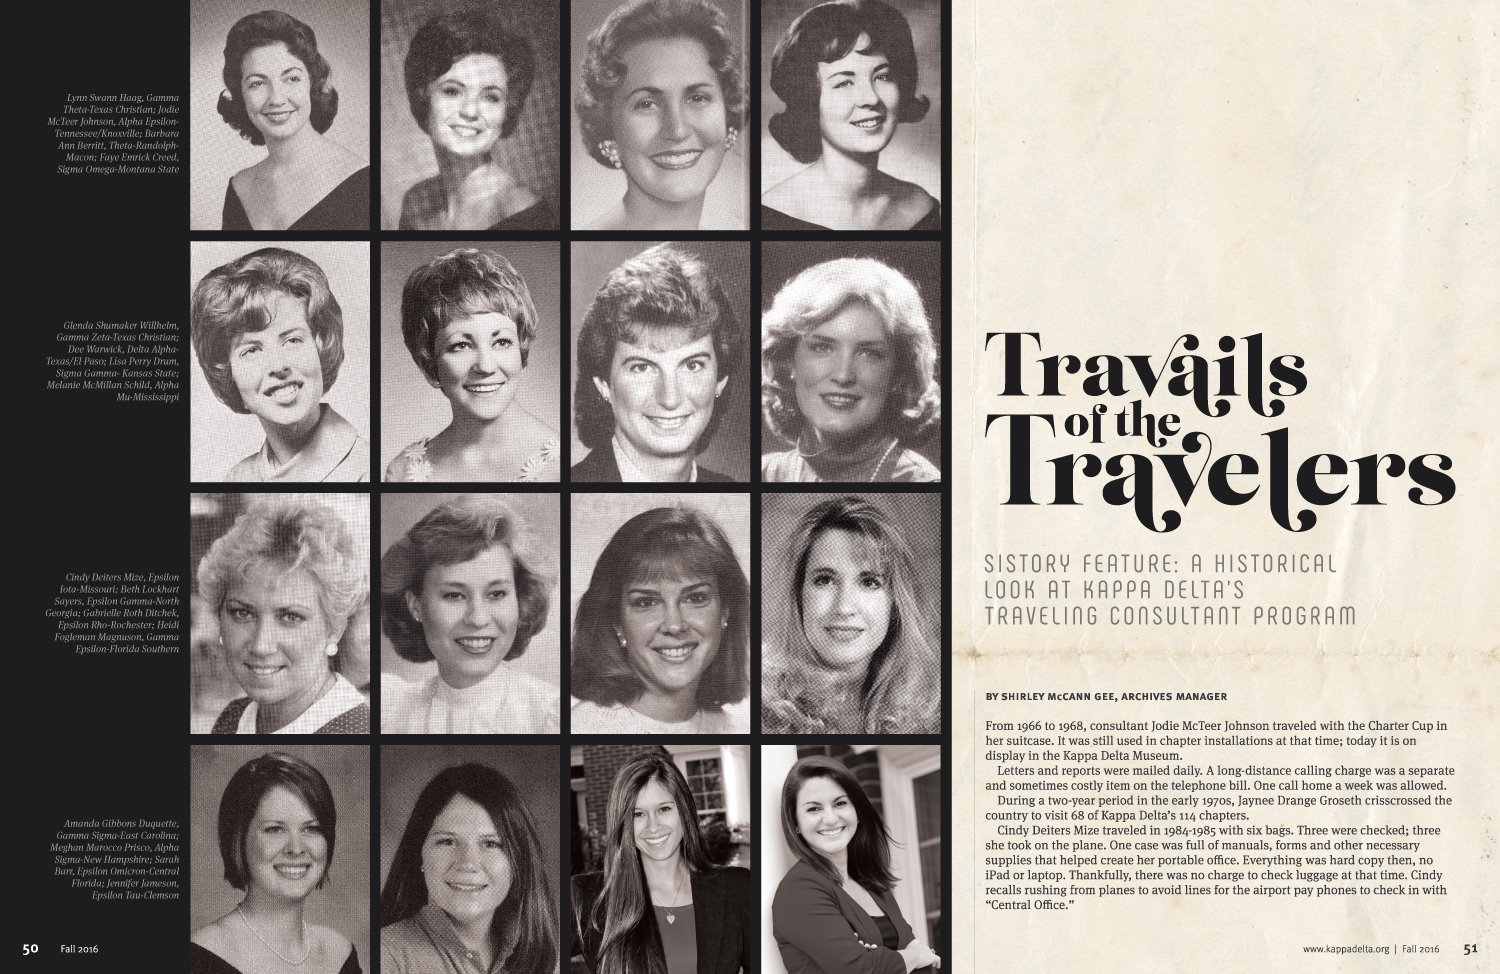 fall-2016-angelos-kappa-delta-sorority-travails-of-the-travelers-sistory-ldc-history-article